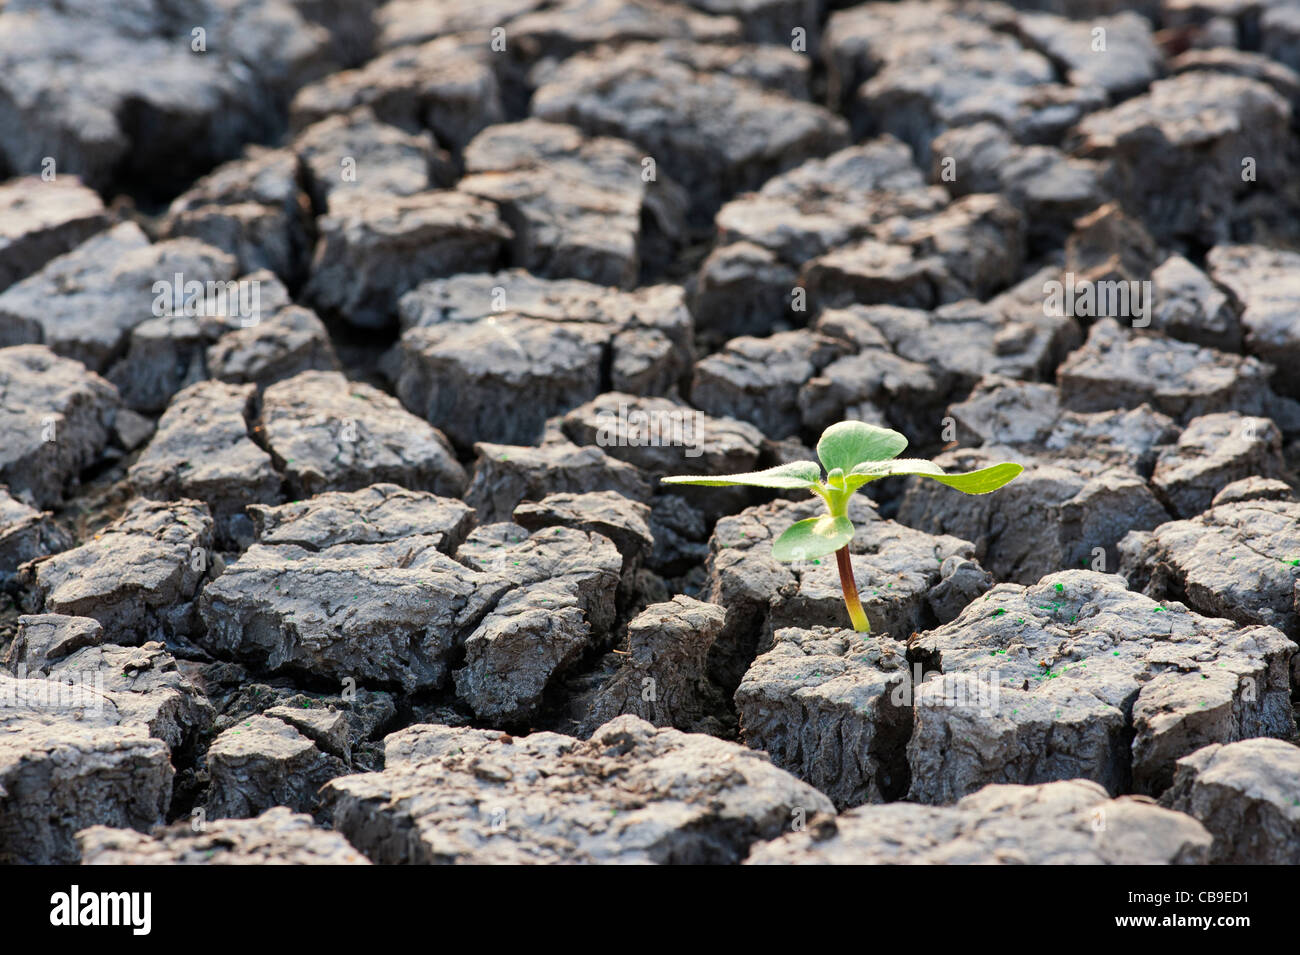 Plant seedling growing the the dry cracked earth in india - Stock Image